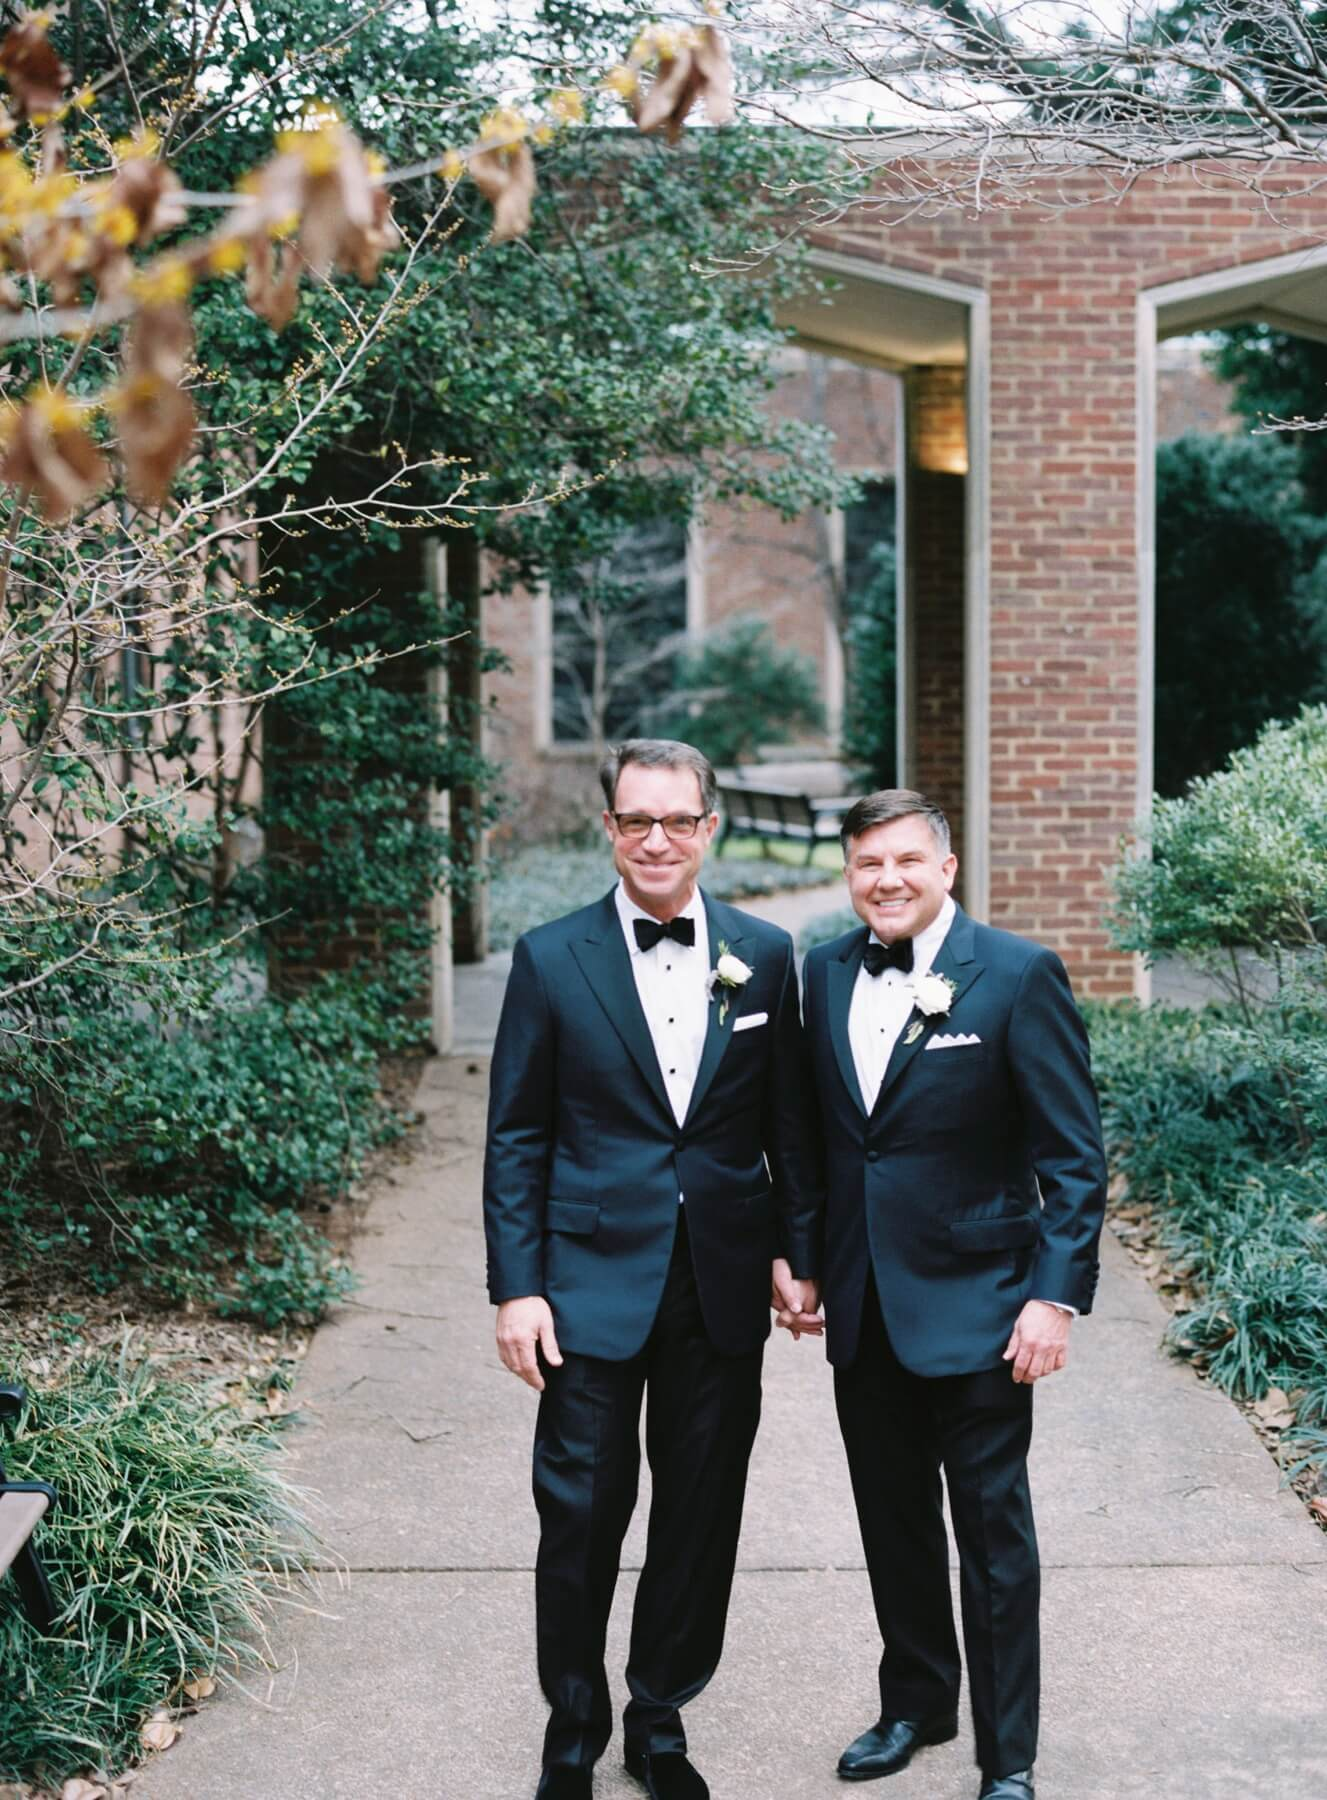 Hal Cato and Michael Burcham's wedding was one for the books.